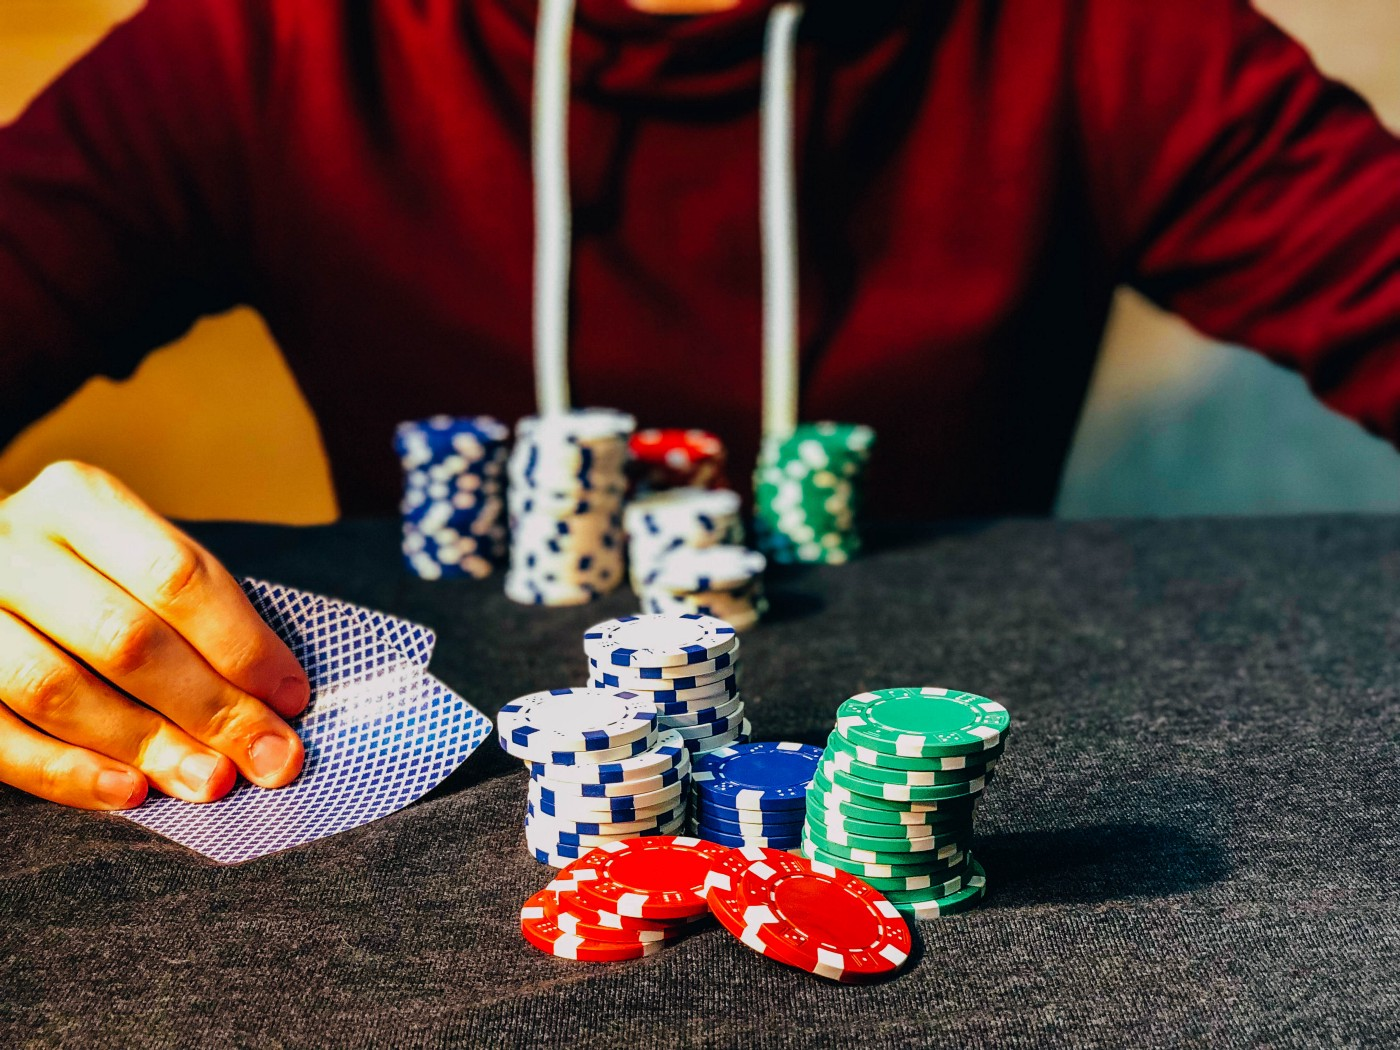 A poker player looking at his cards